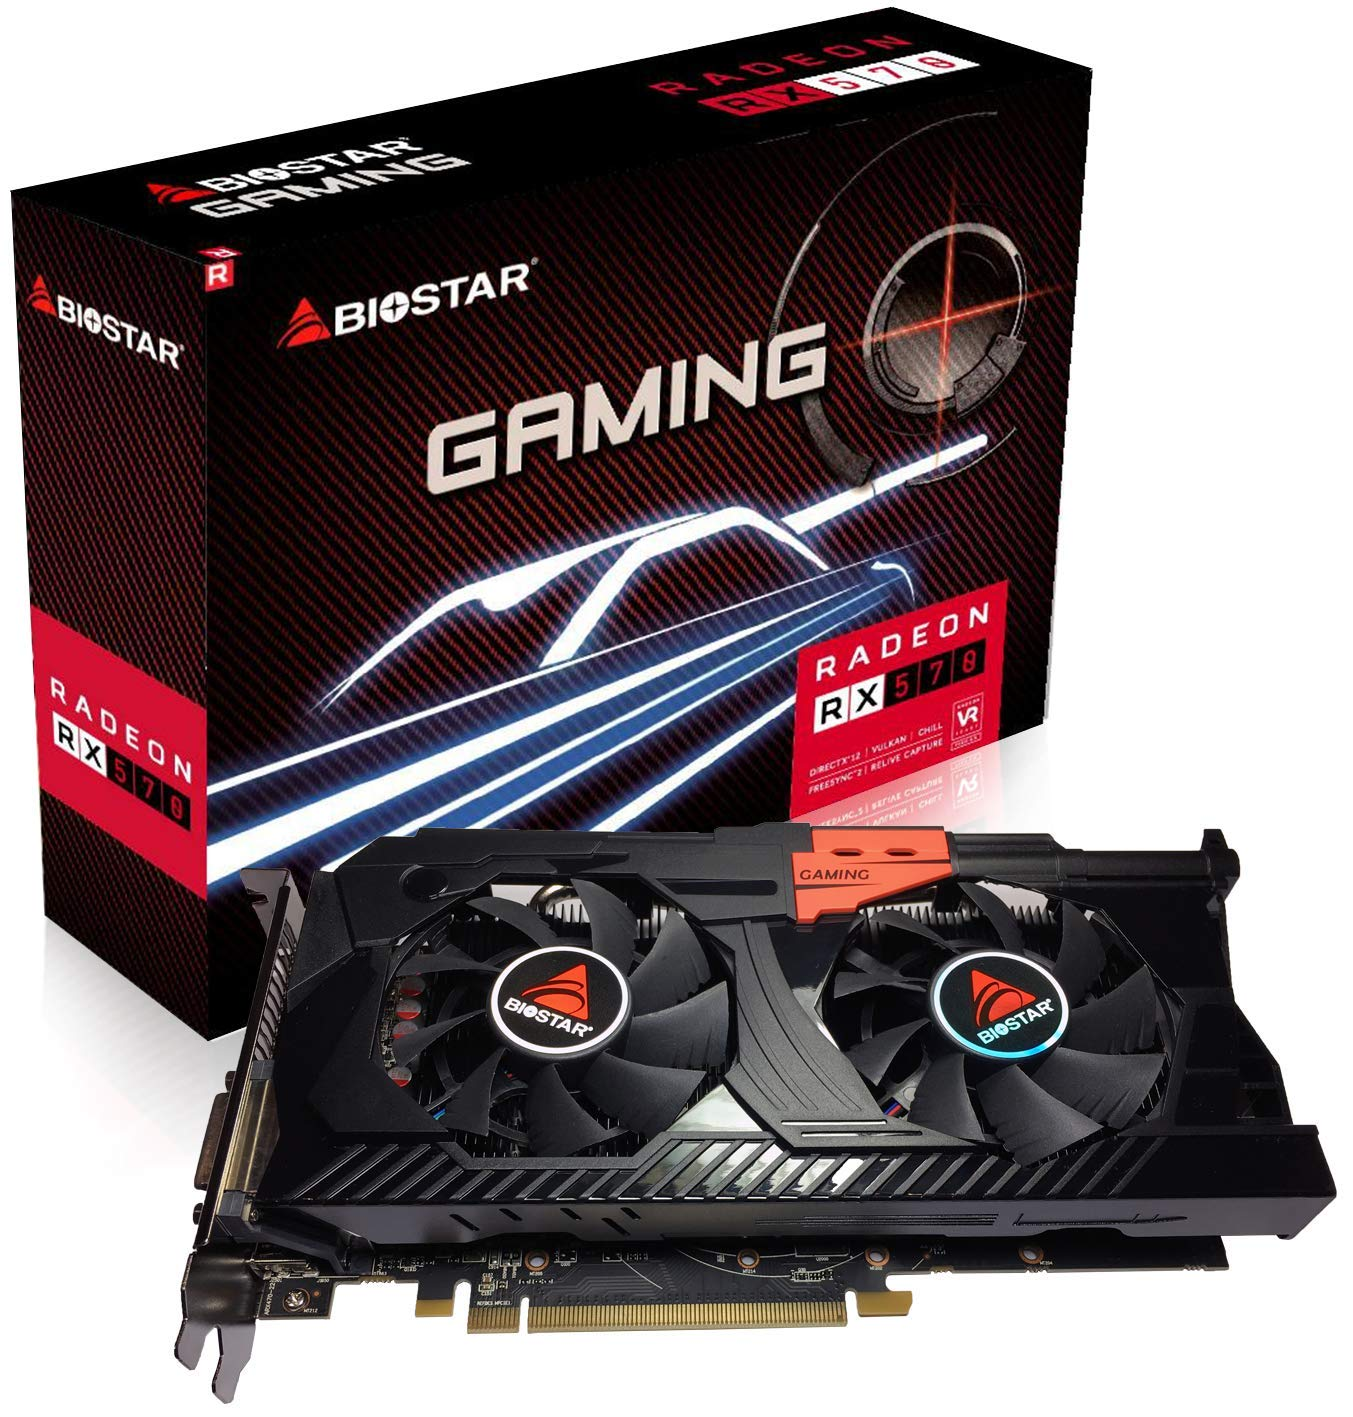 Amazon.com: Biostar OC Gaming Radeon RX 570 8GB GDDR5 256 ...